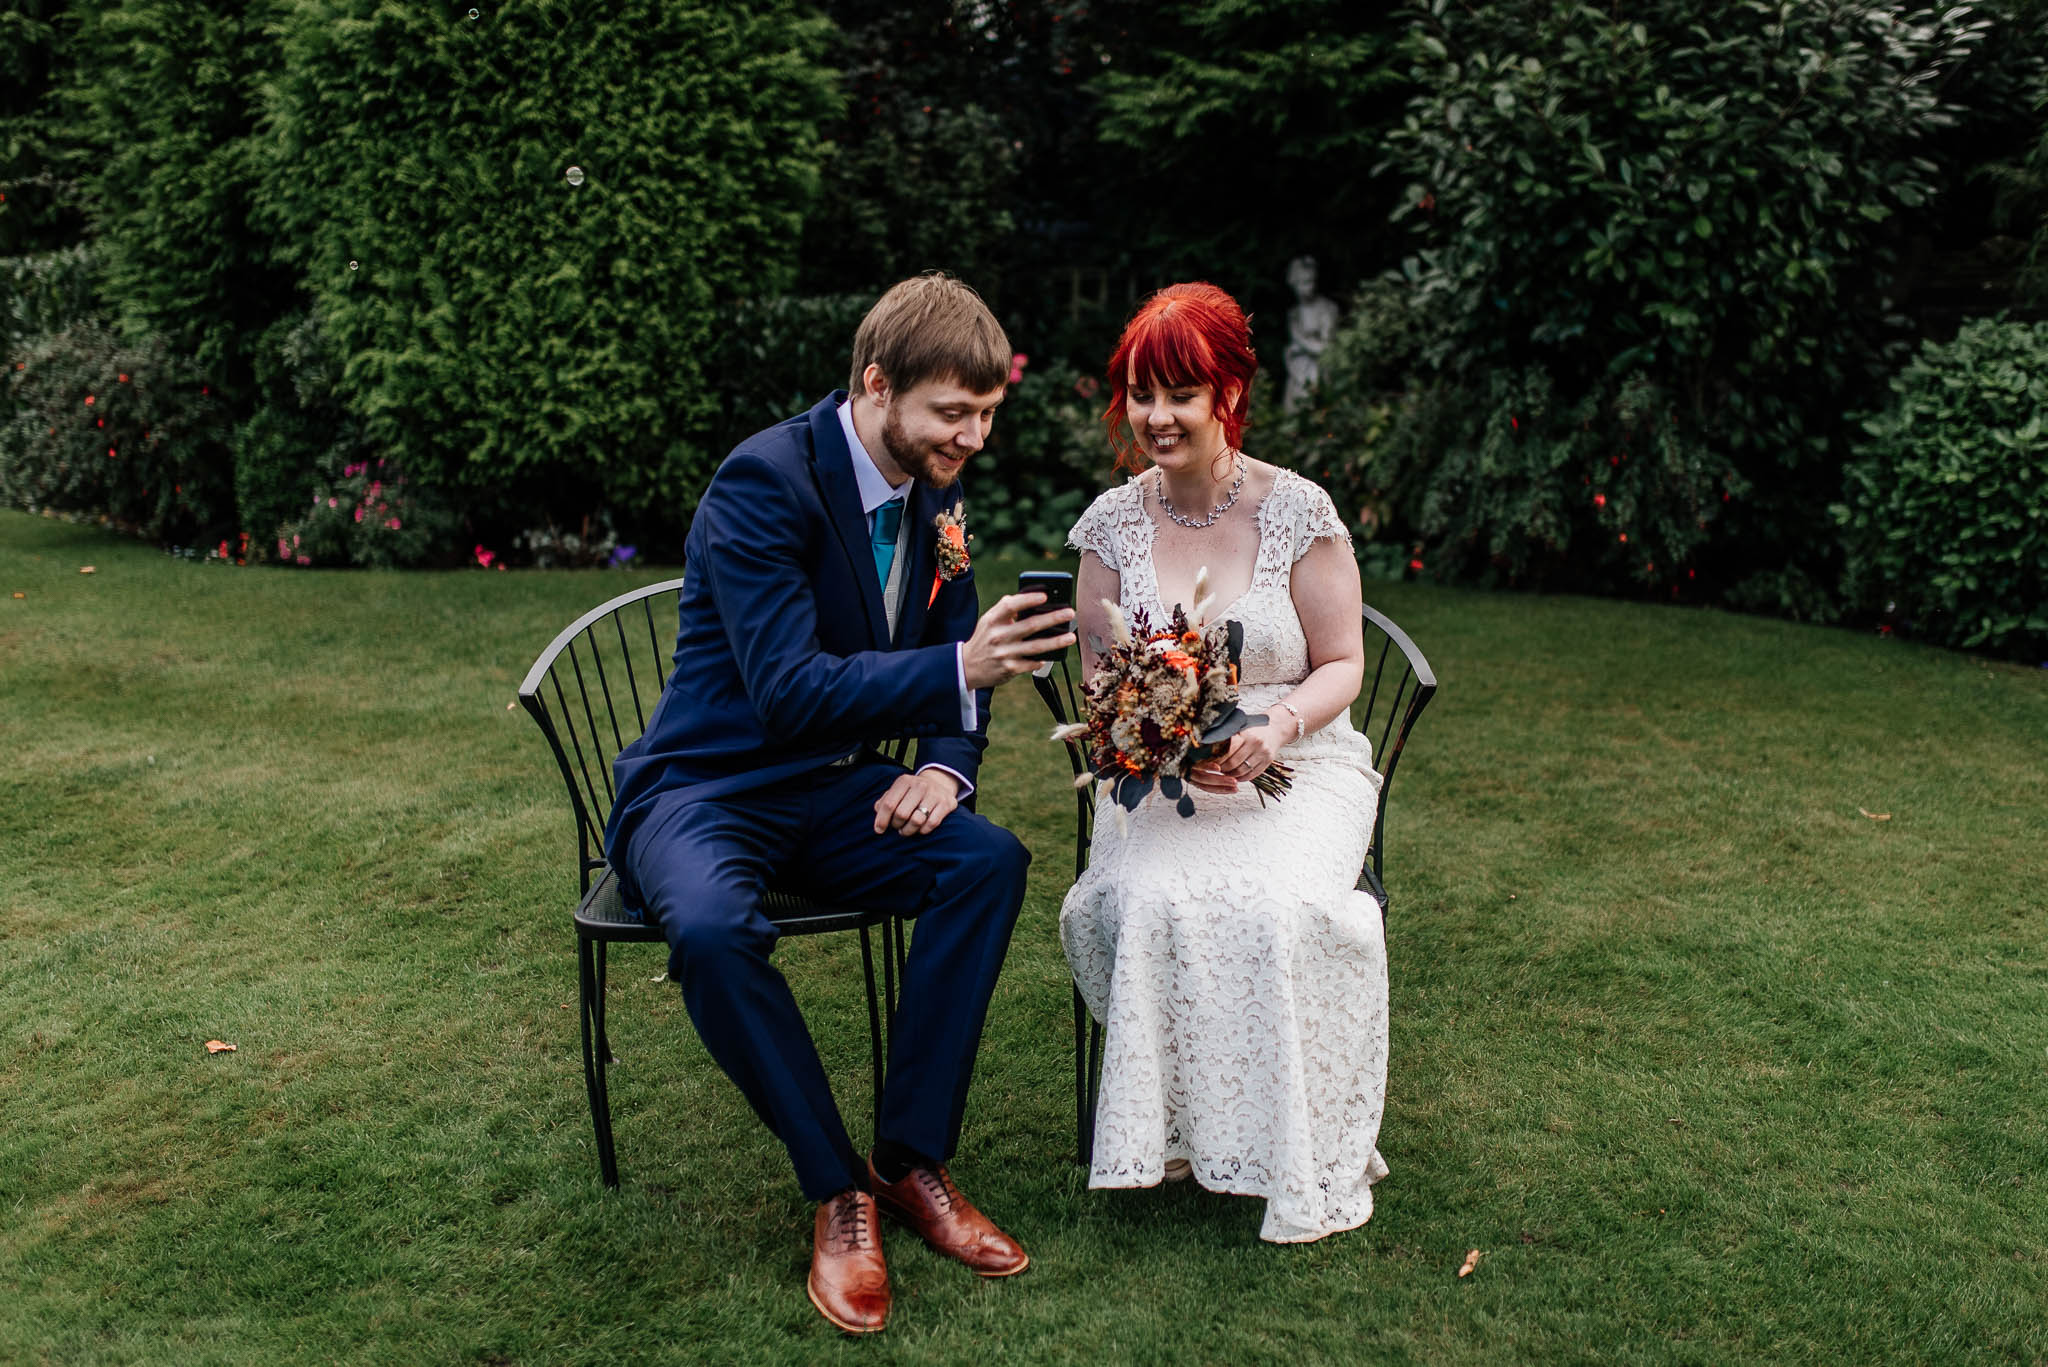 Bride and groom with a smartphone